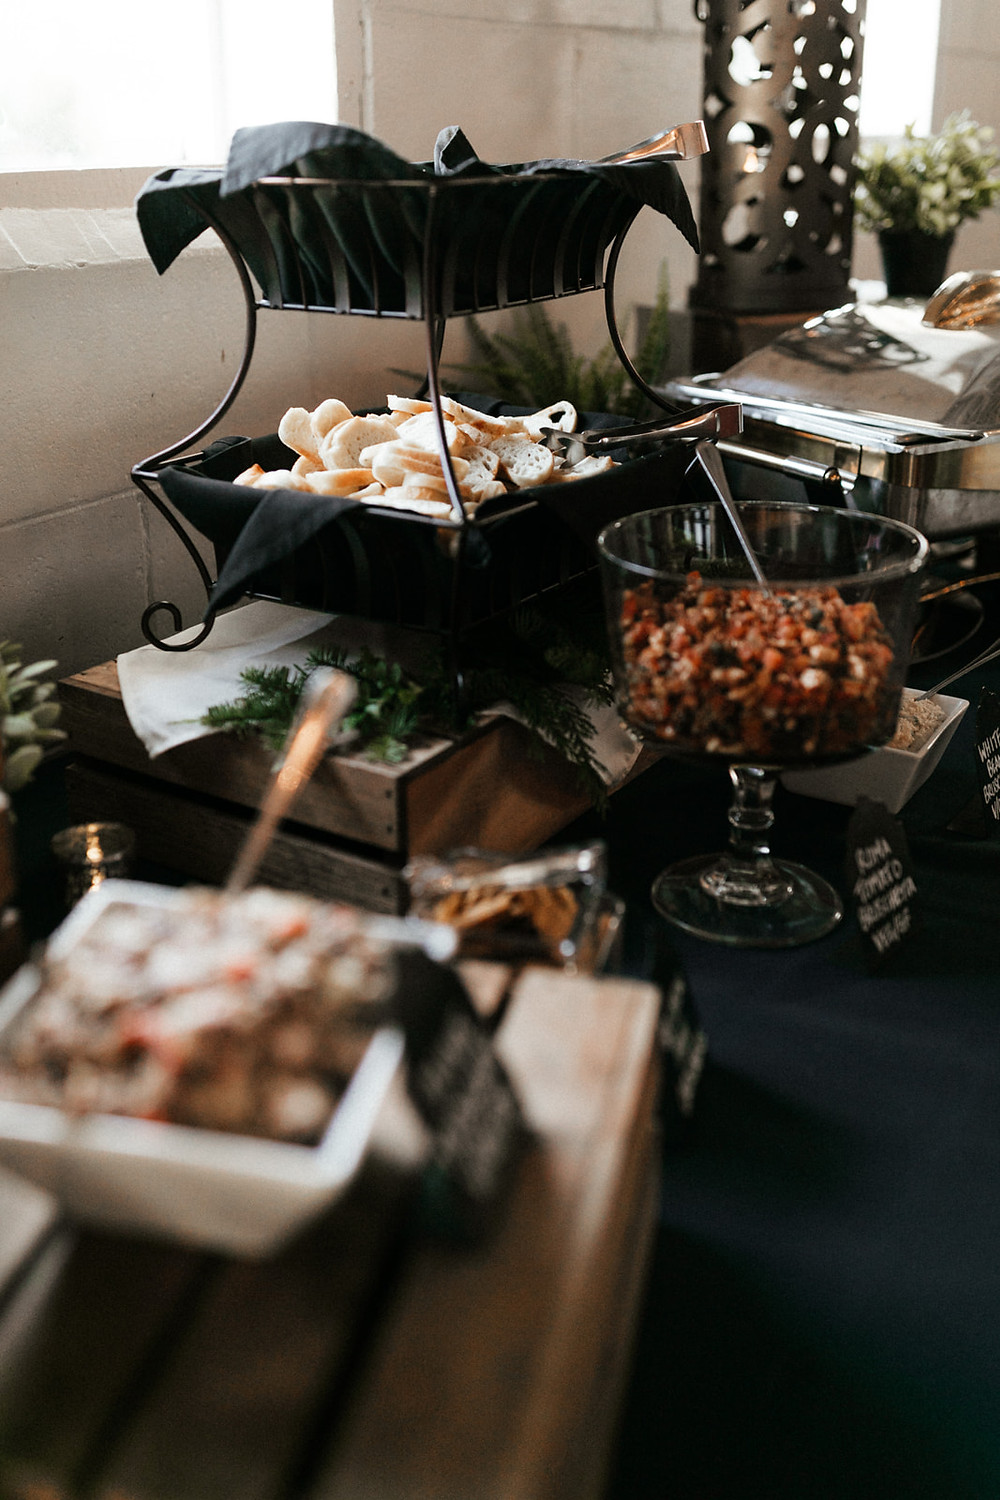 Twelve Baskets catering from a winter wedding at Dairyland in Snohomish, a wedding venue near Seattle, WA. | My Snohomish Wedding | Snohomish Wedding Planning